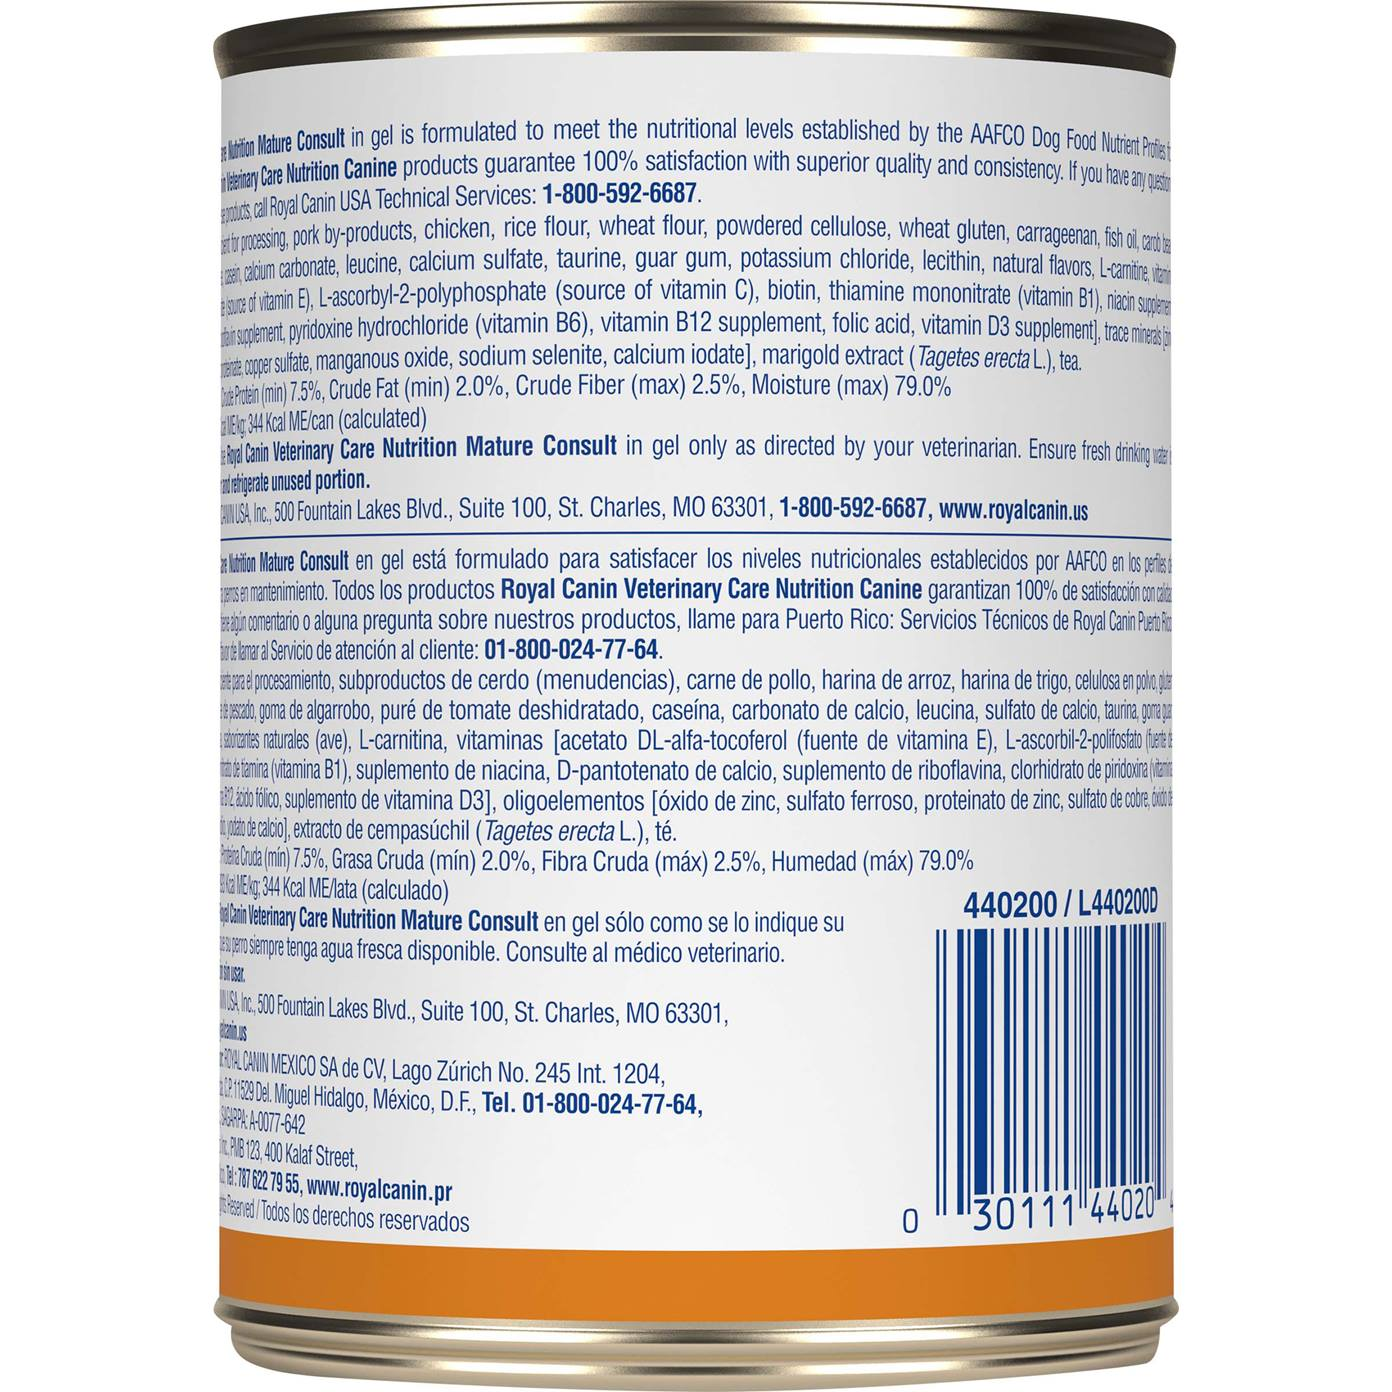 ROYAL CANIN® VETERINARY CARE NUTRITION™ Canine Mature Consult in gel canned dog food